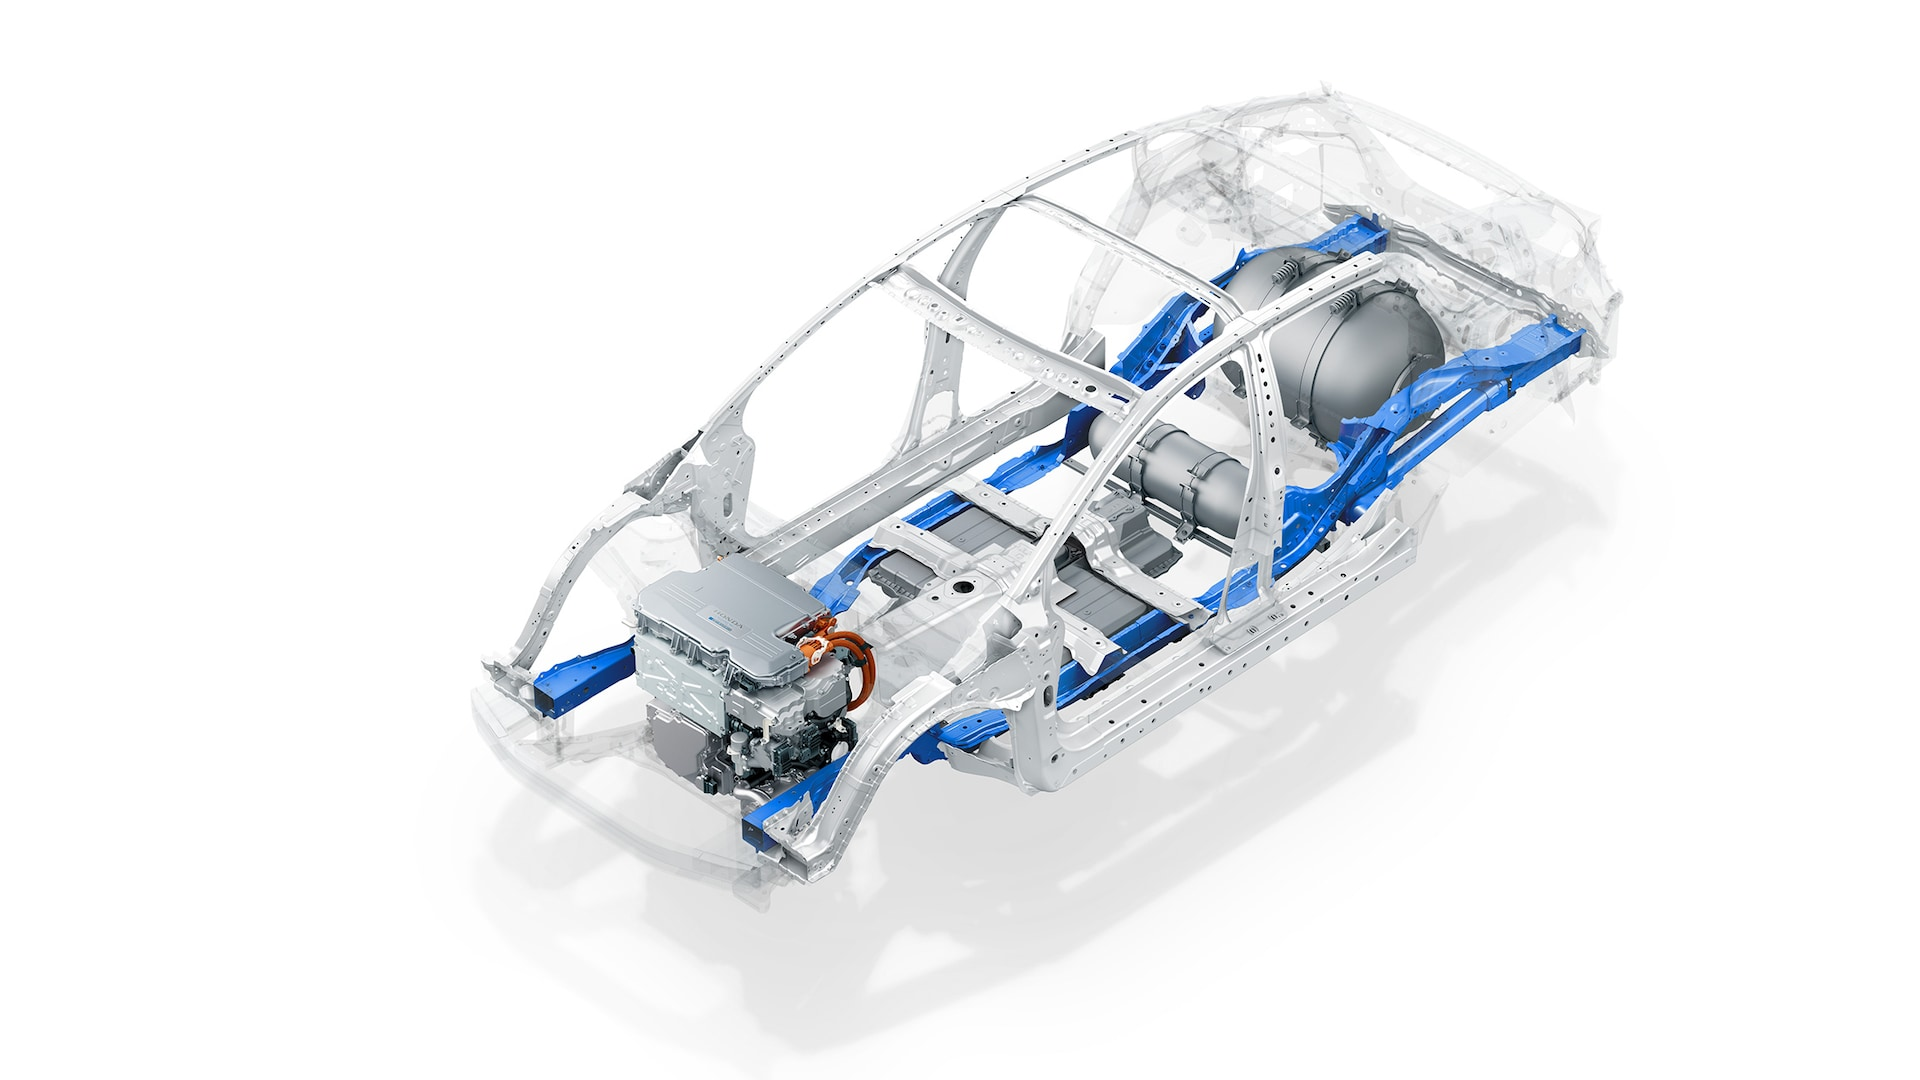 Chassis and subframe of 2020 Honda Clarity Fuel Cell.